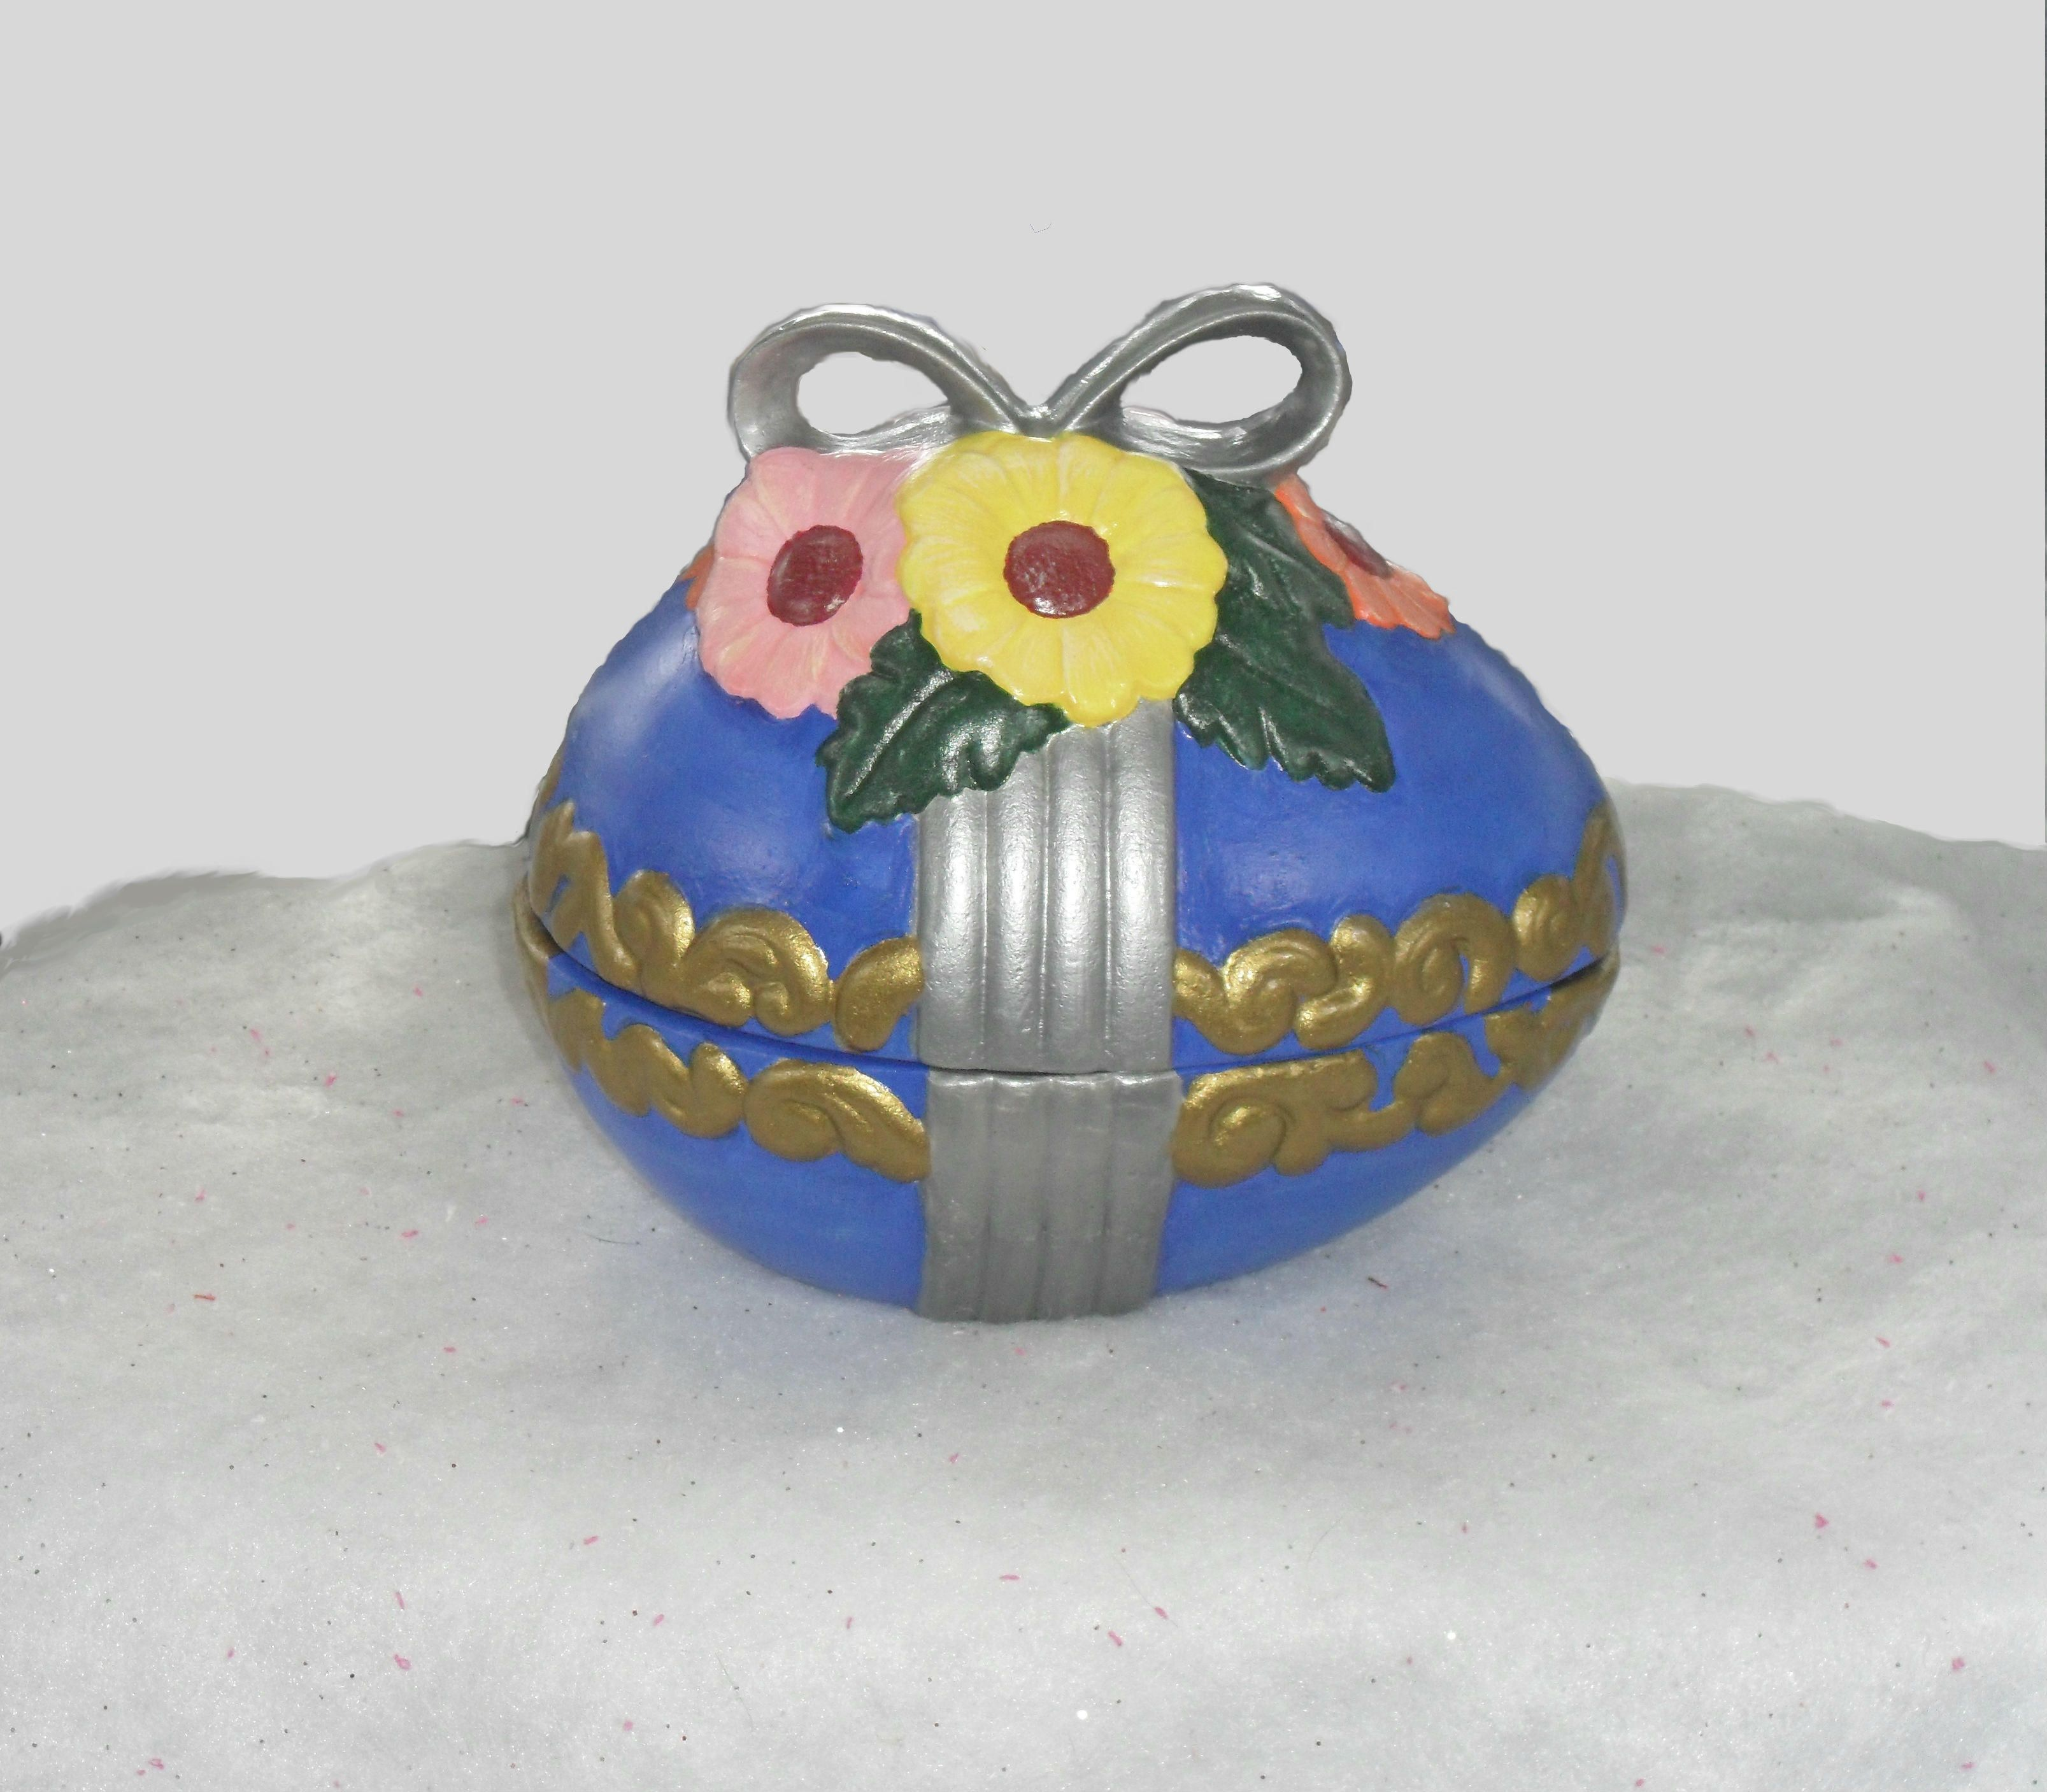 """The combined total dimensions of this beautiful ceramic box is approximately  6"""" tall x 6 1/2"""" long x 5"""" wide. The base of the box itself is a full 2"""" tall. Perfect for an Easter or Ostara themed gift box or basket. Please understand that this item is ..."""